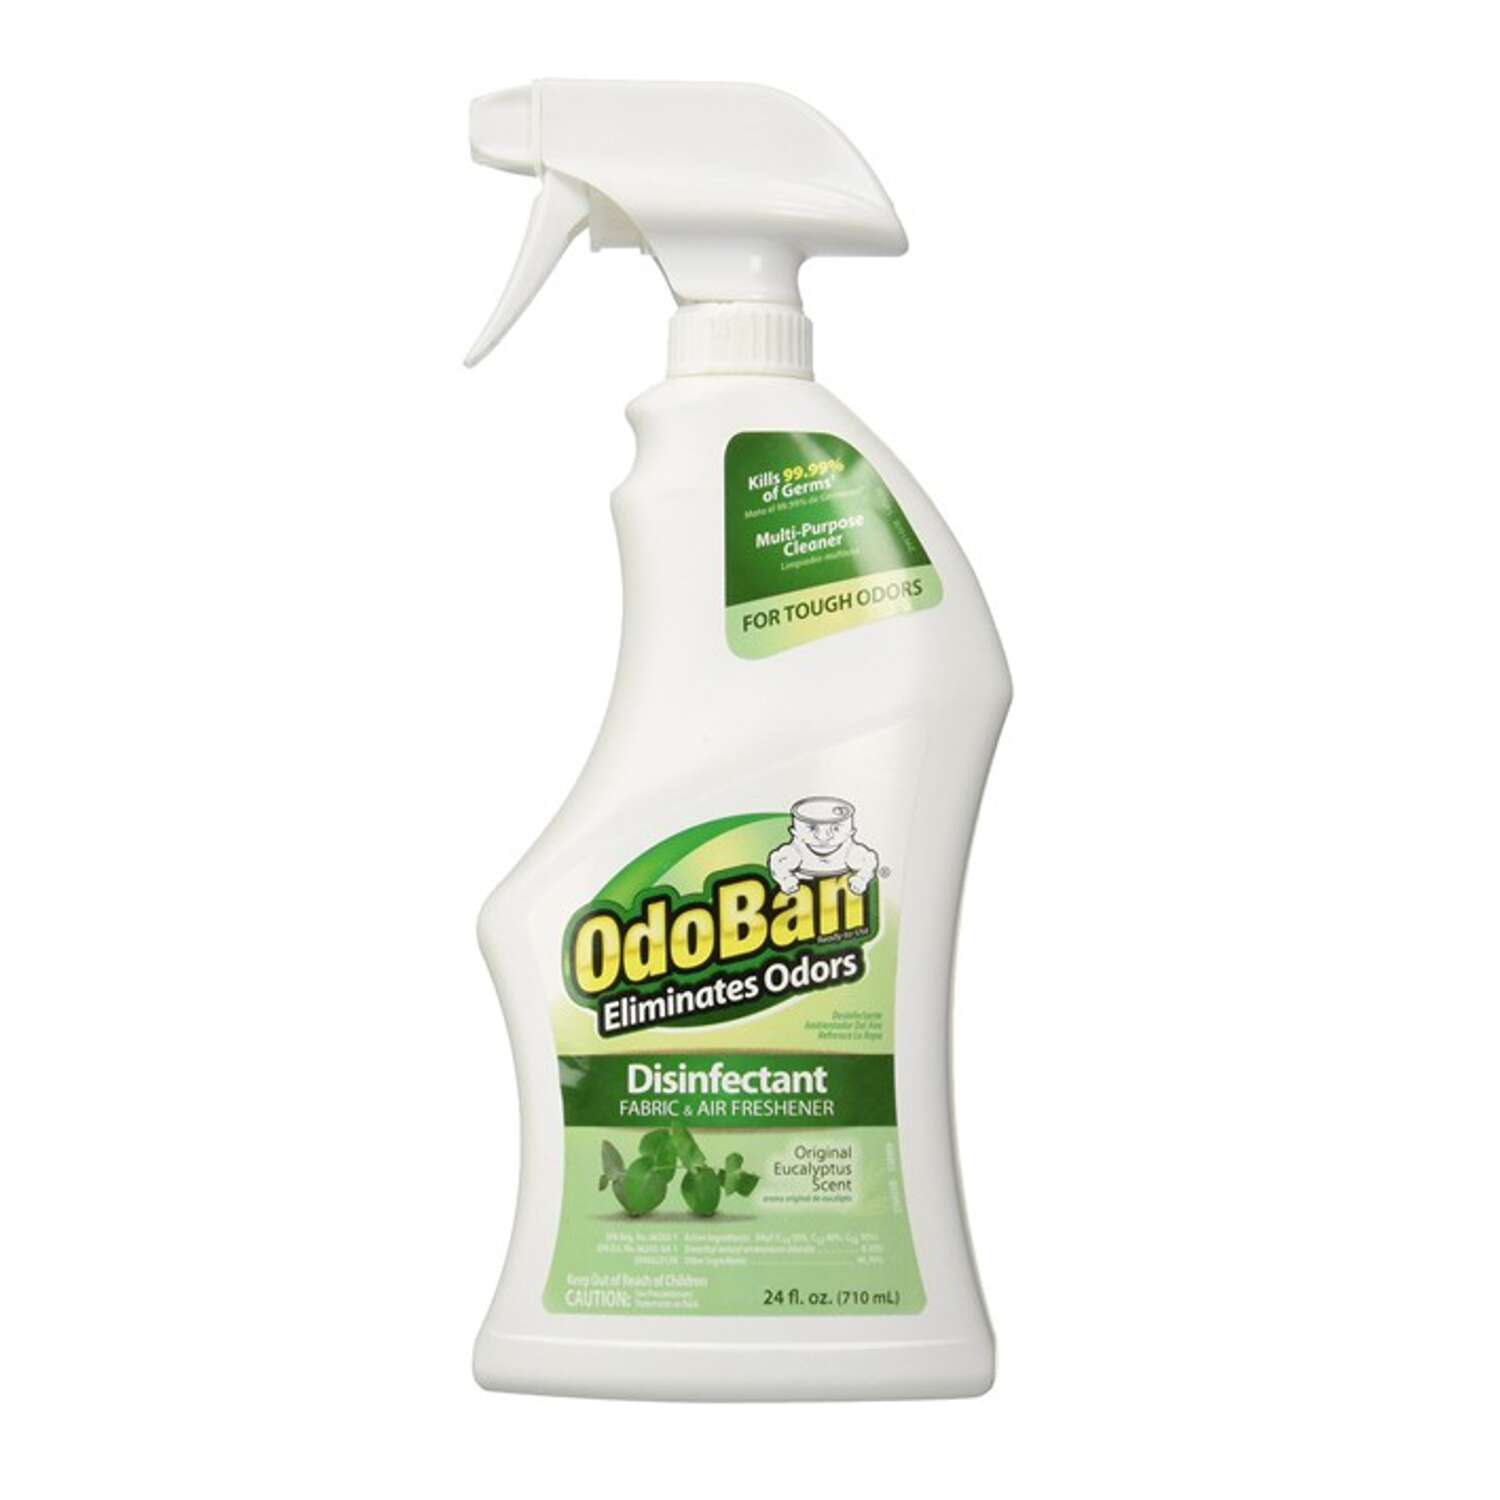 Odoban Eucalyptus Scent Mold and Mildew Odor Eliminator 32 oz. Liquid